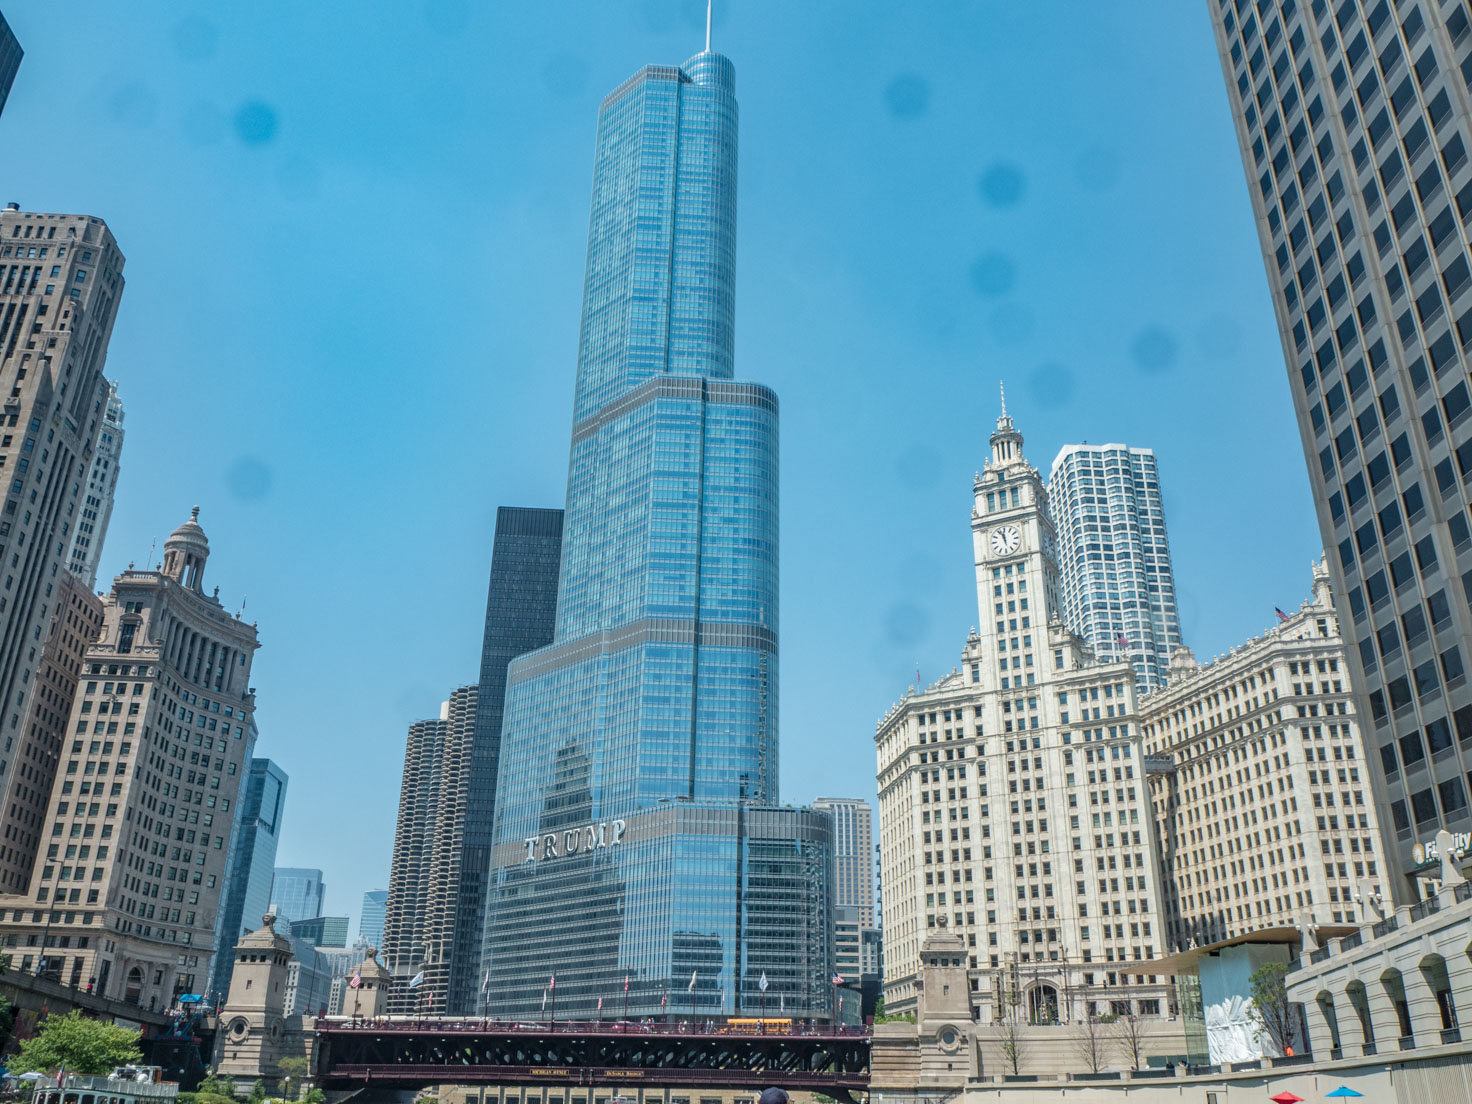 Architecture river tour and 3 must see things in Chicago by Chic Journal blog